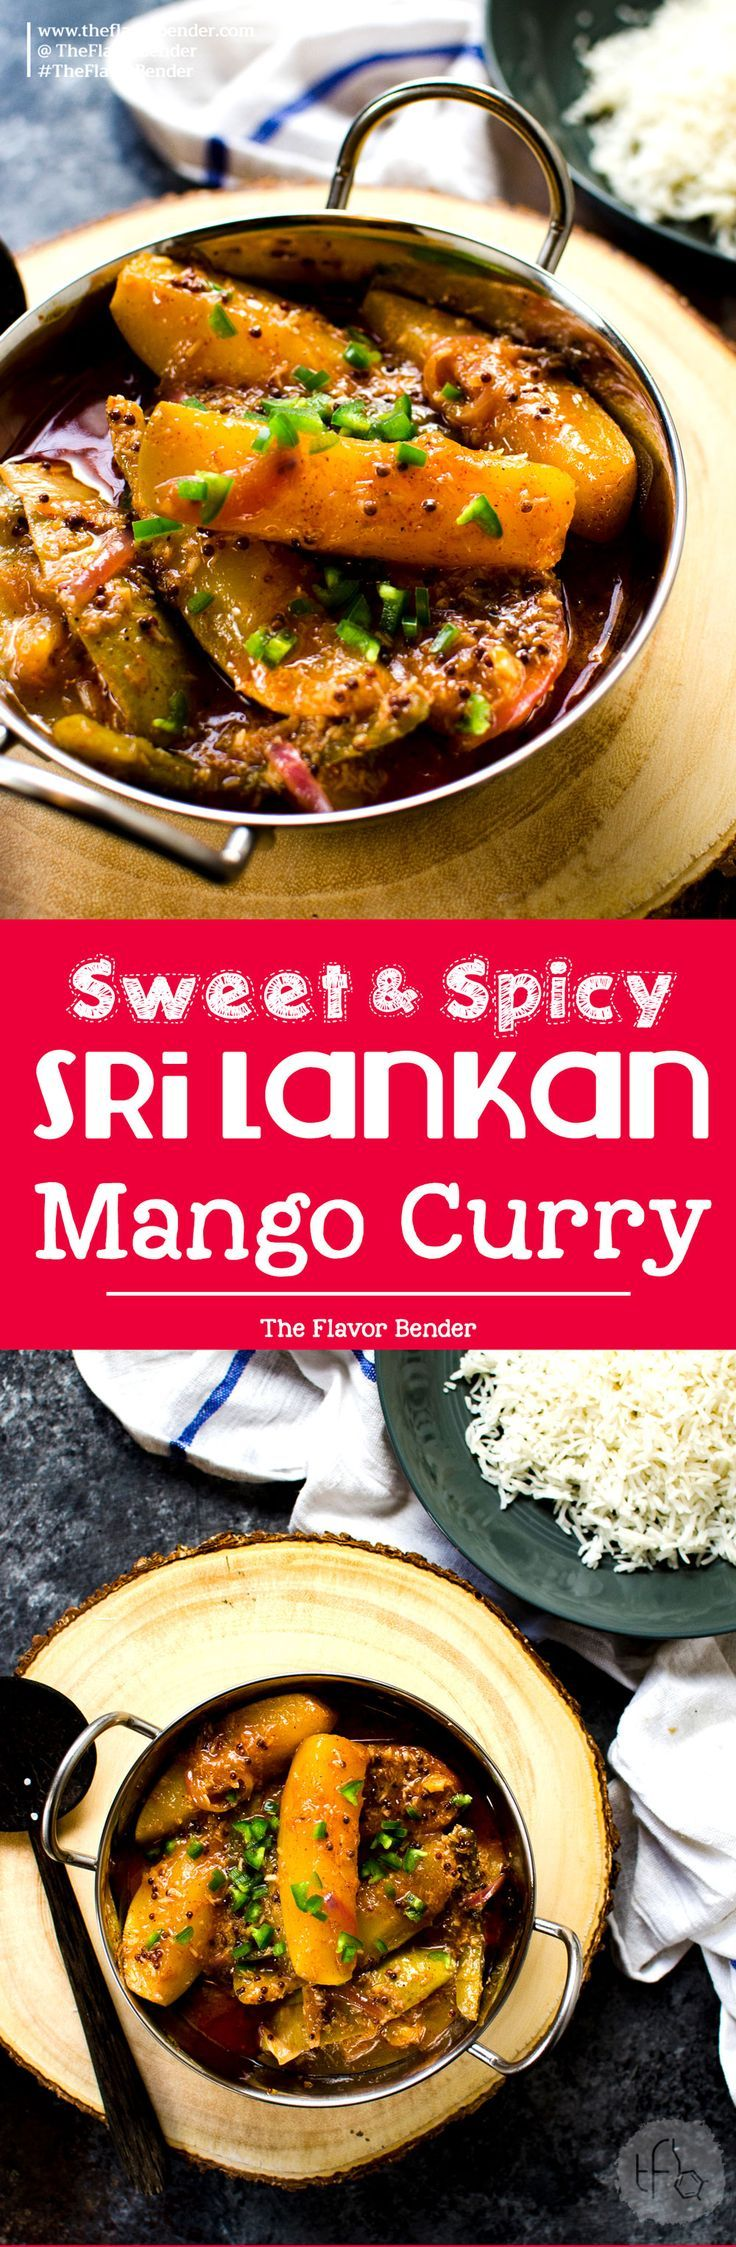 Sri Lankan Mango Curry - An easy curry recipe that is sweet, sour and spicy. Vegan and Gluten free and is absolutely amazing! A Sri Lankan favorite! #SriLankanFood #VeganCurry #VegetarianCurry via @theflavorbender